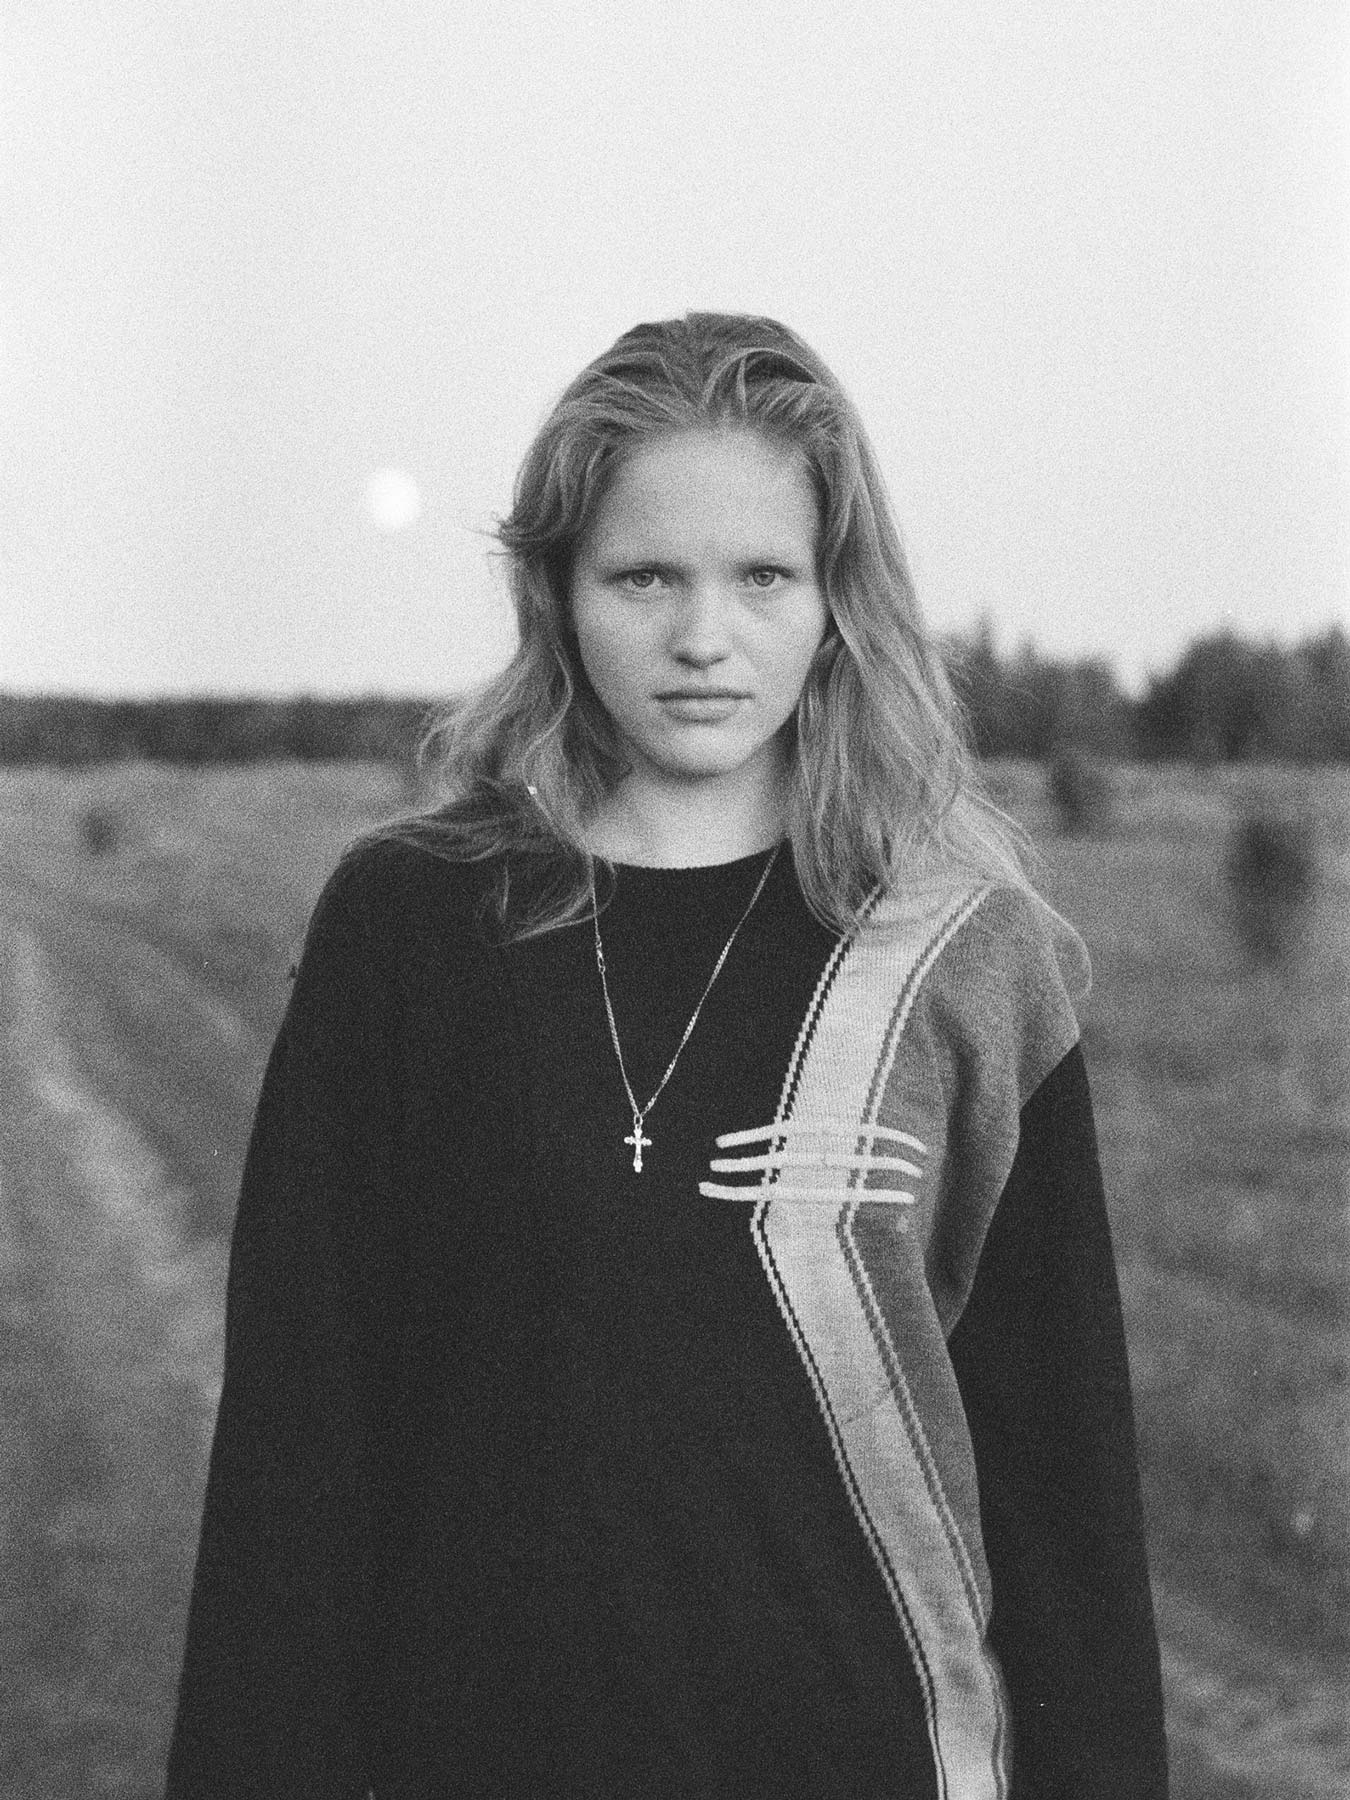 "<p>This portrait of Irina in Kargaleyka village is part of Masha Demianova's long-term project ""Hometown"", an exploration of Russian beauty, femininity, belonging, and landscape. The photographer travelled to different remote locations in Russia to document her friends' and models' hometowns.</p>"